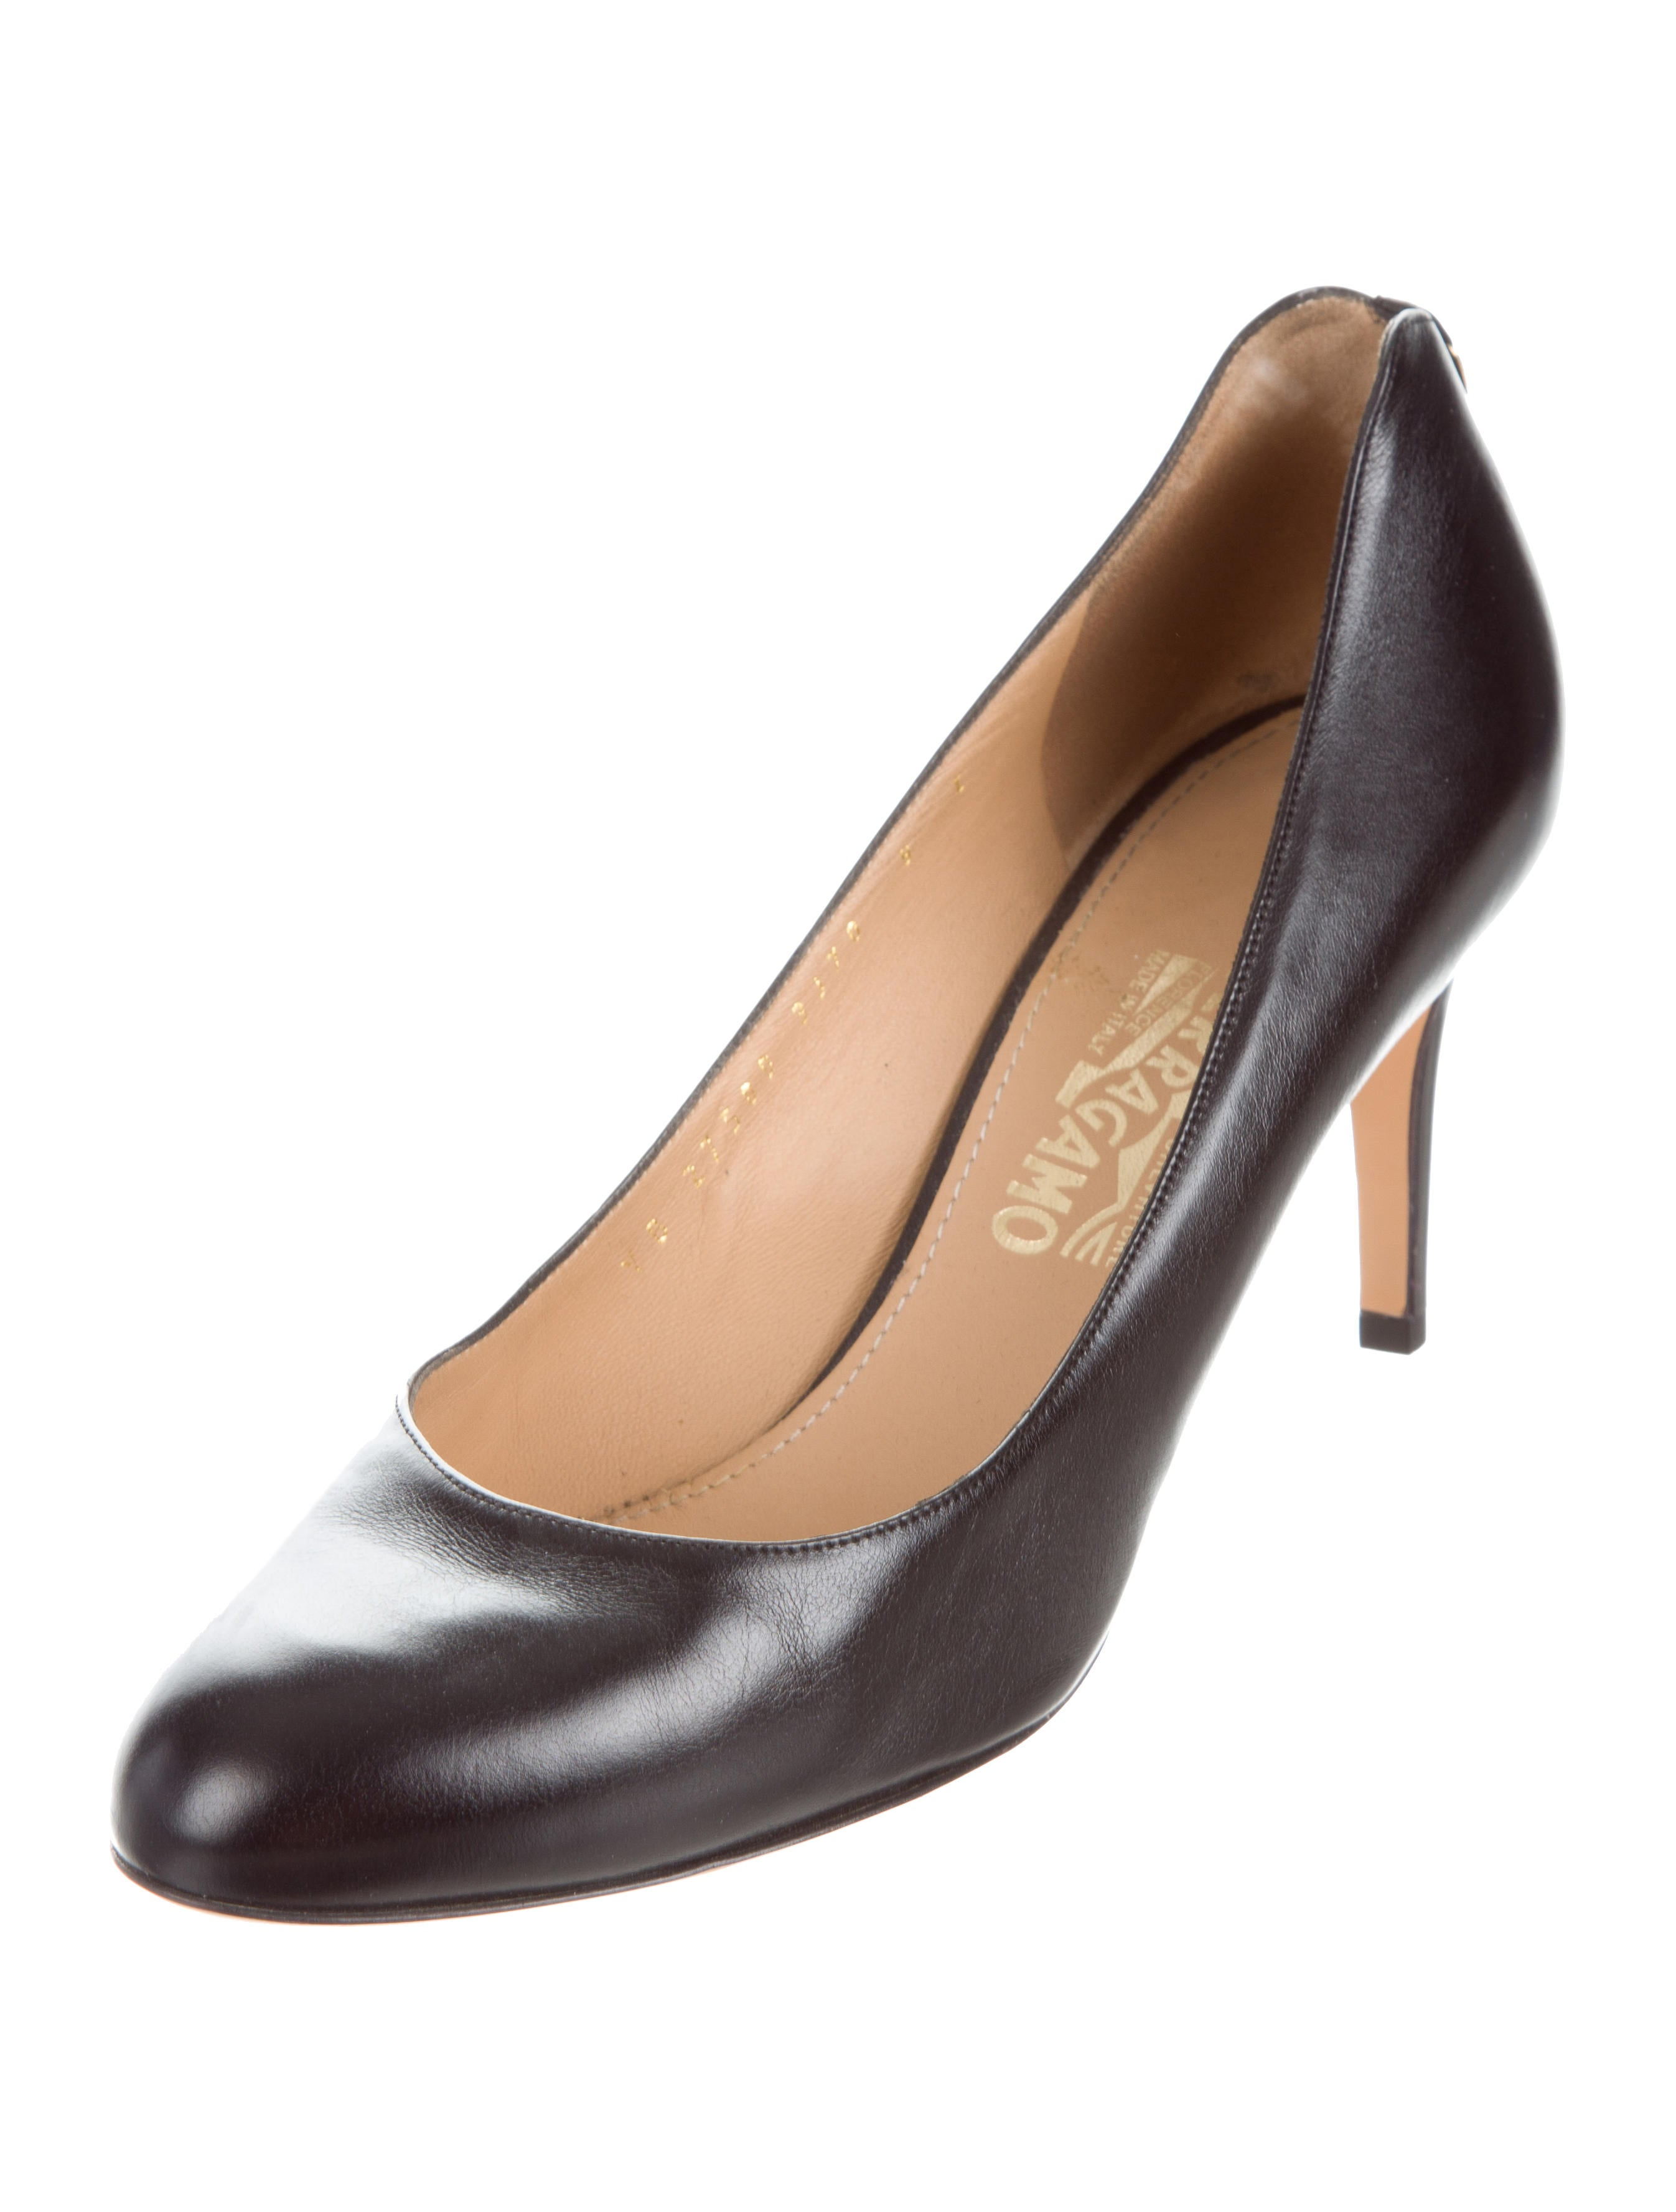 salvatore ferragamo leather round toe pumps shoes sal49959 the realreal. Black Bedroom Furniture Sets. Home Design Ideas